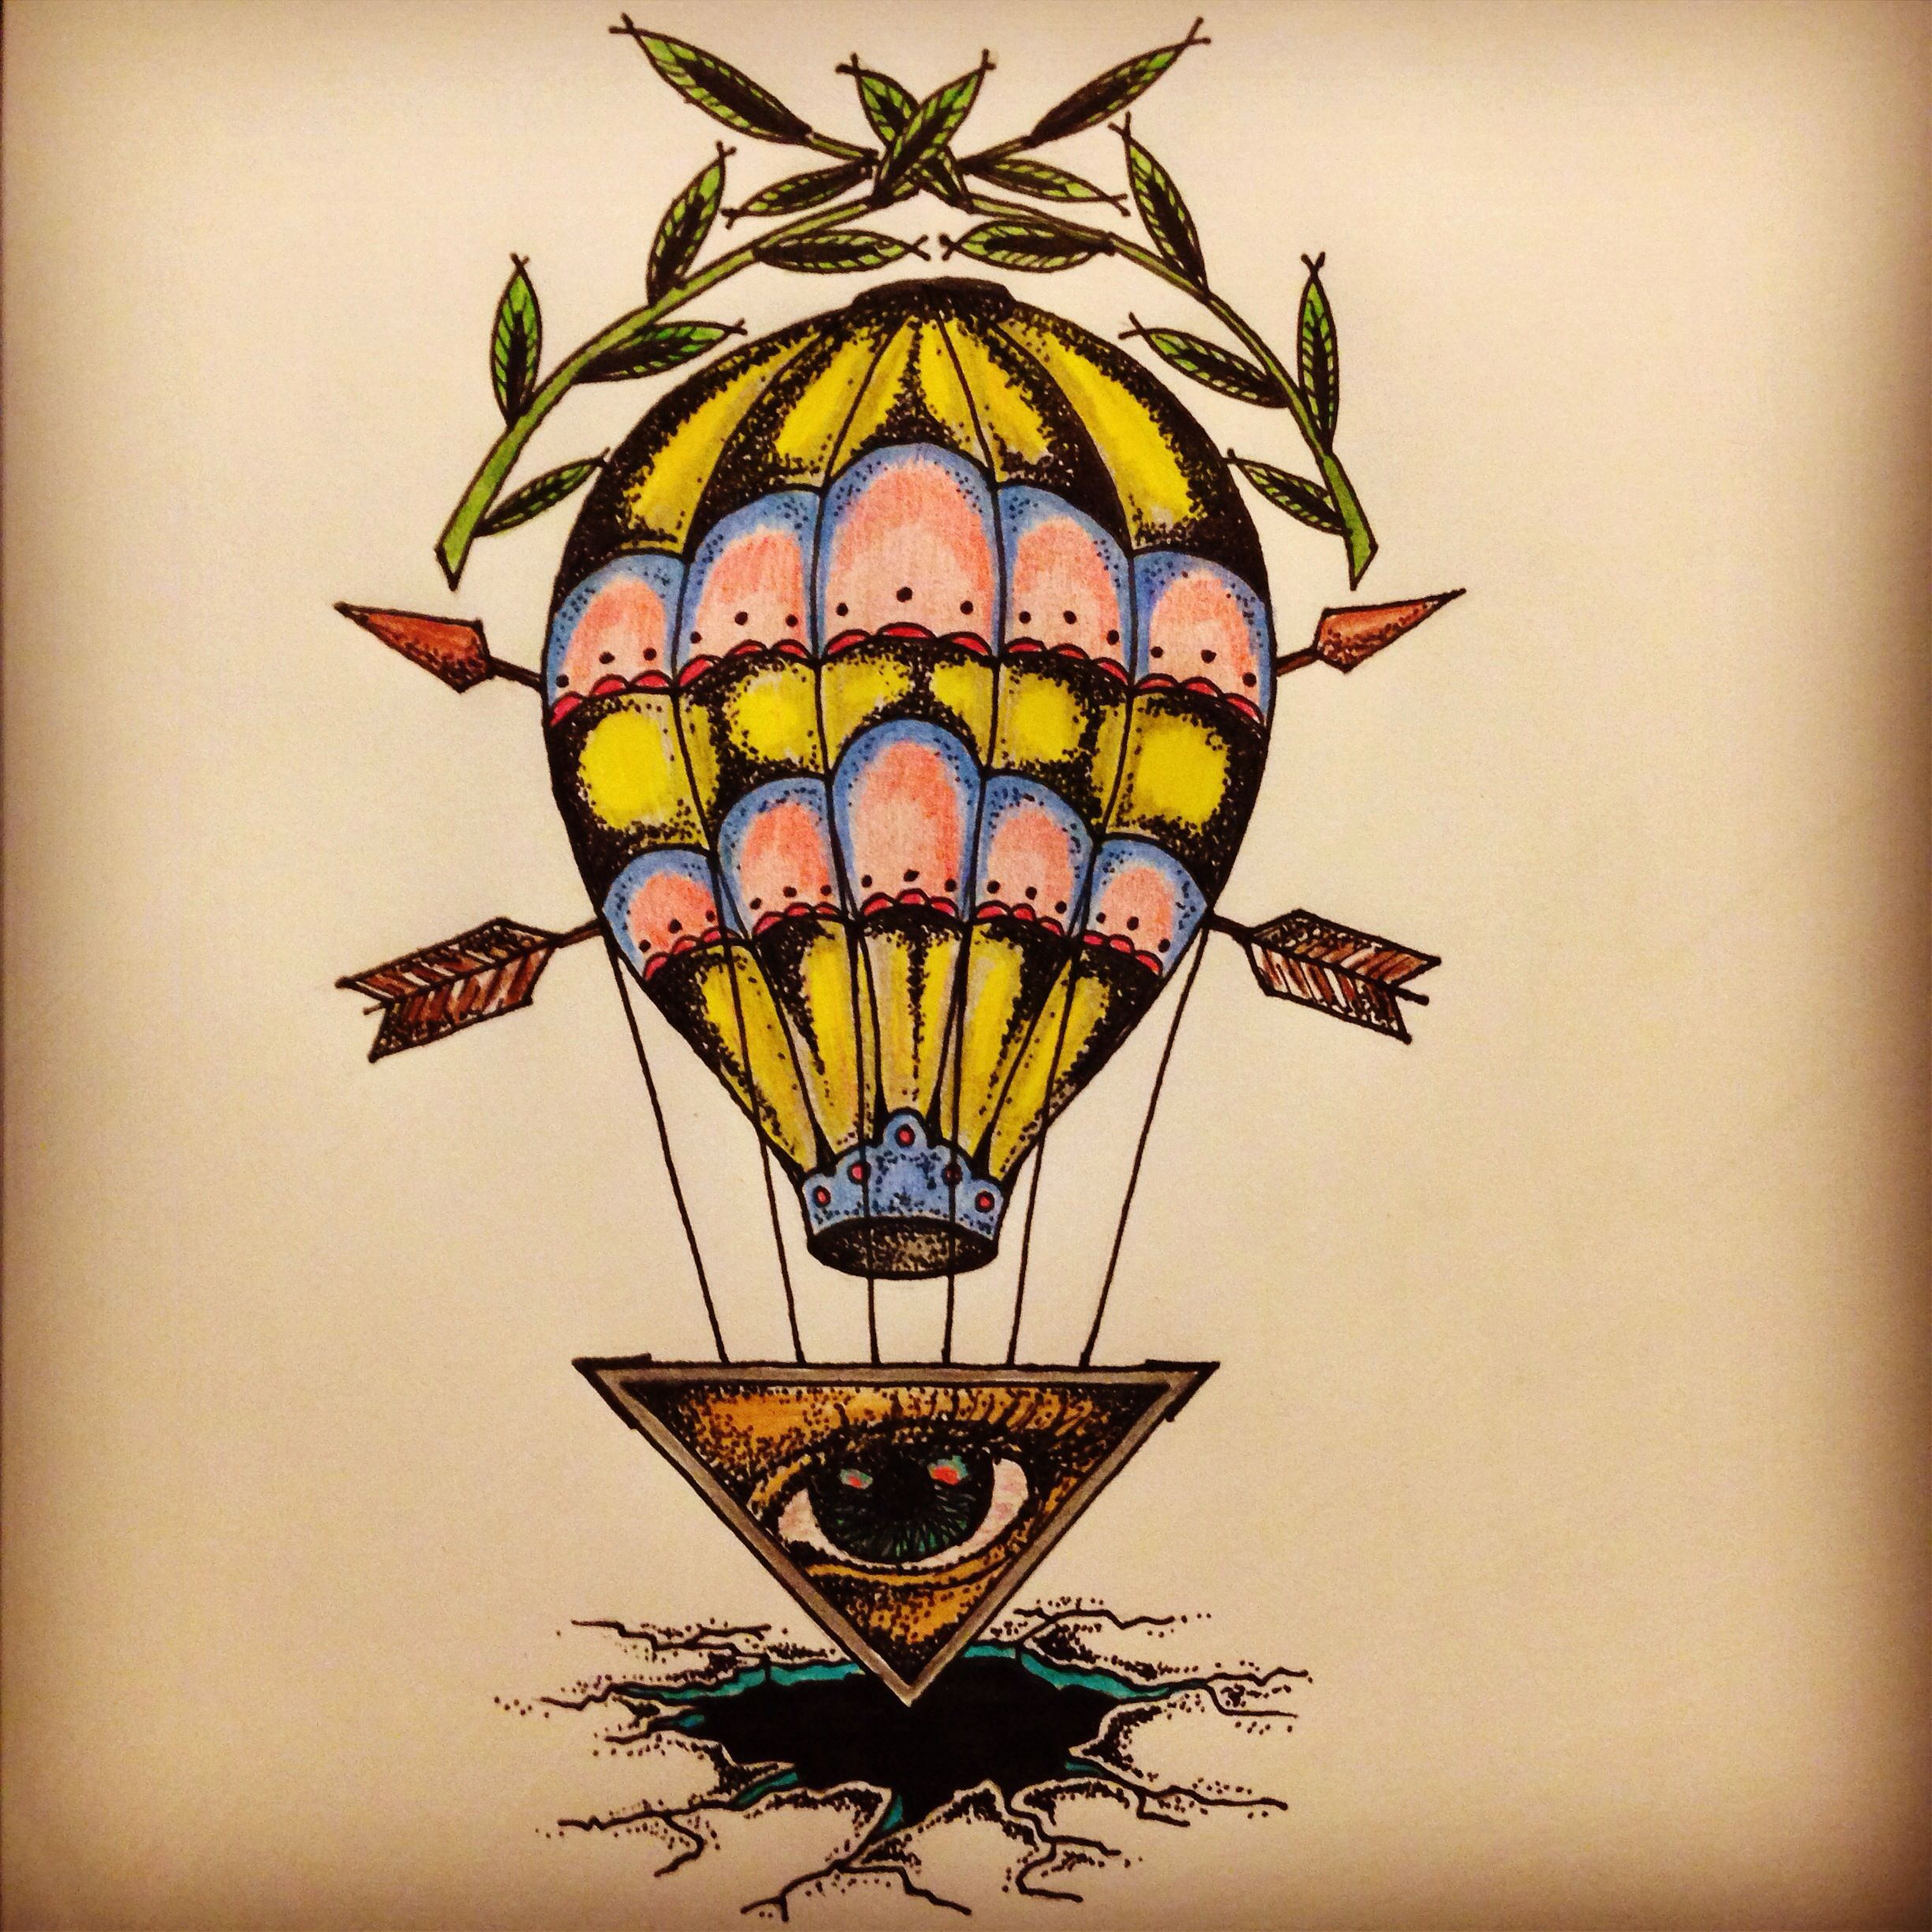 New traditional balloon / all seeing eye tattoo sketch by - Ranz